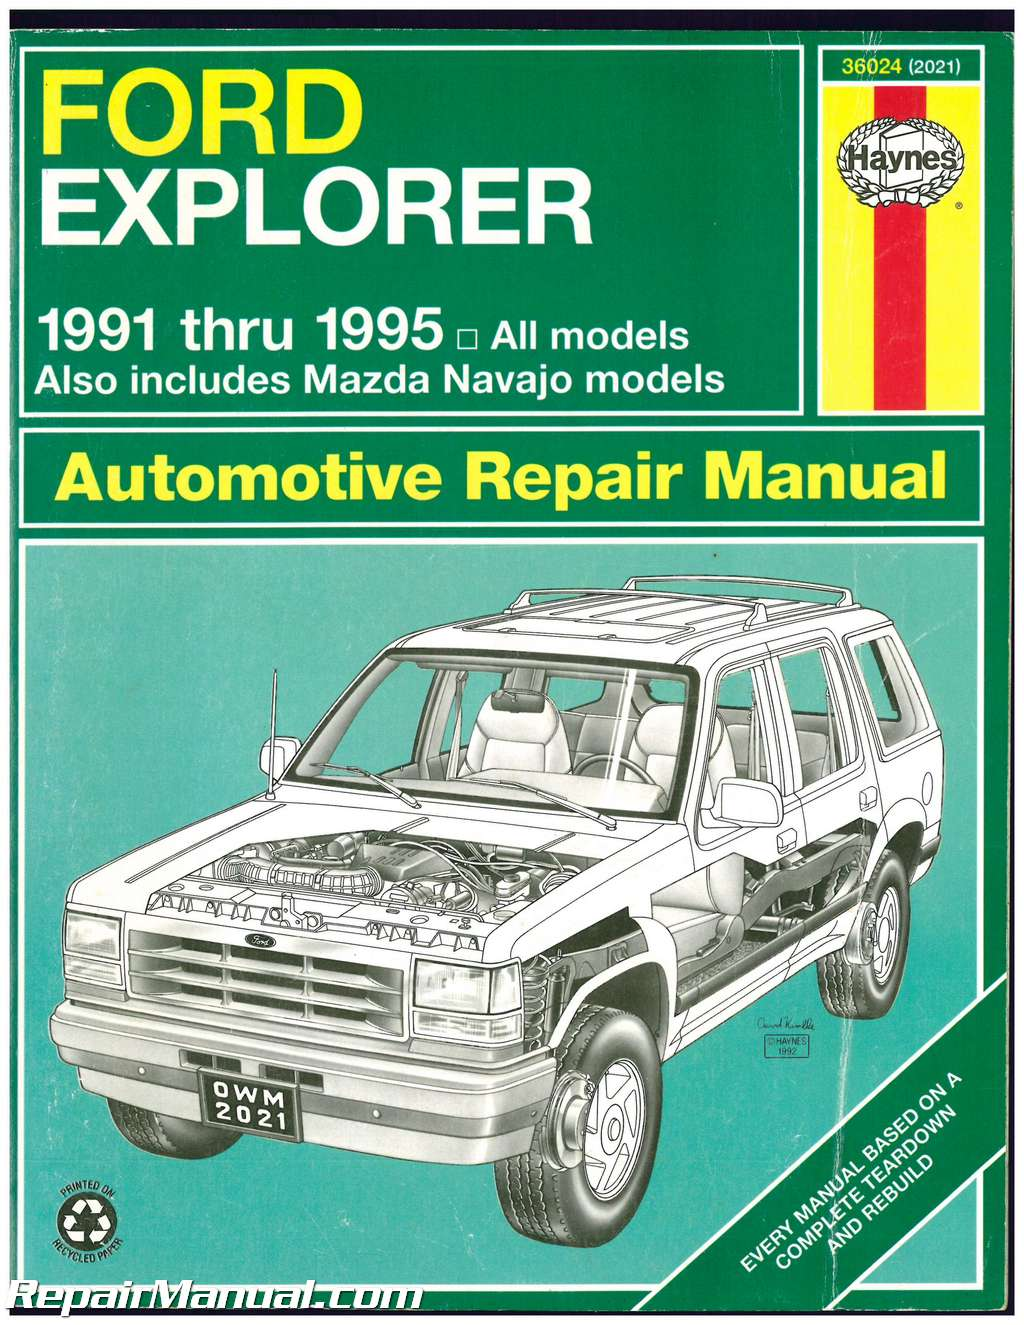 used ford explorer mazda navajo mercury mountaineer automotive rh repairmanual com ford explorer 1991 thru 2001 haynes repair manual 1999 Ford Explorer Shop Manual